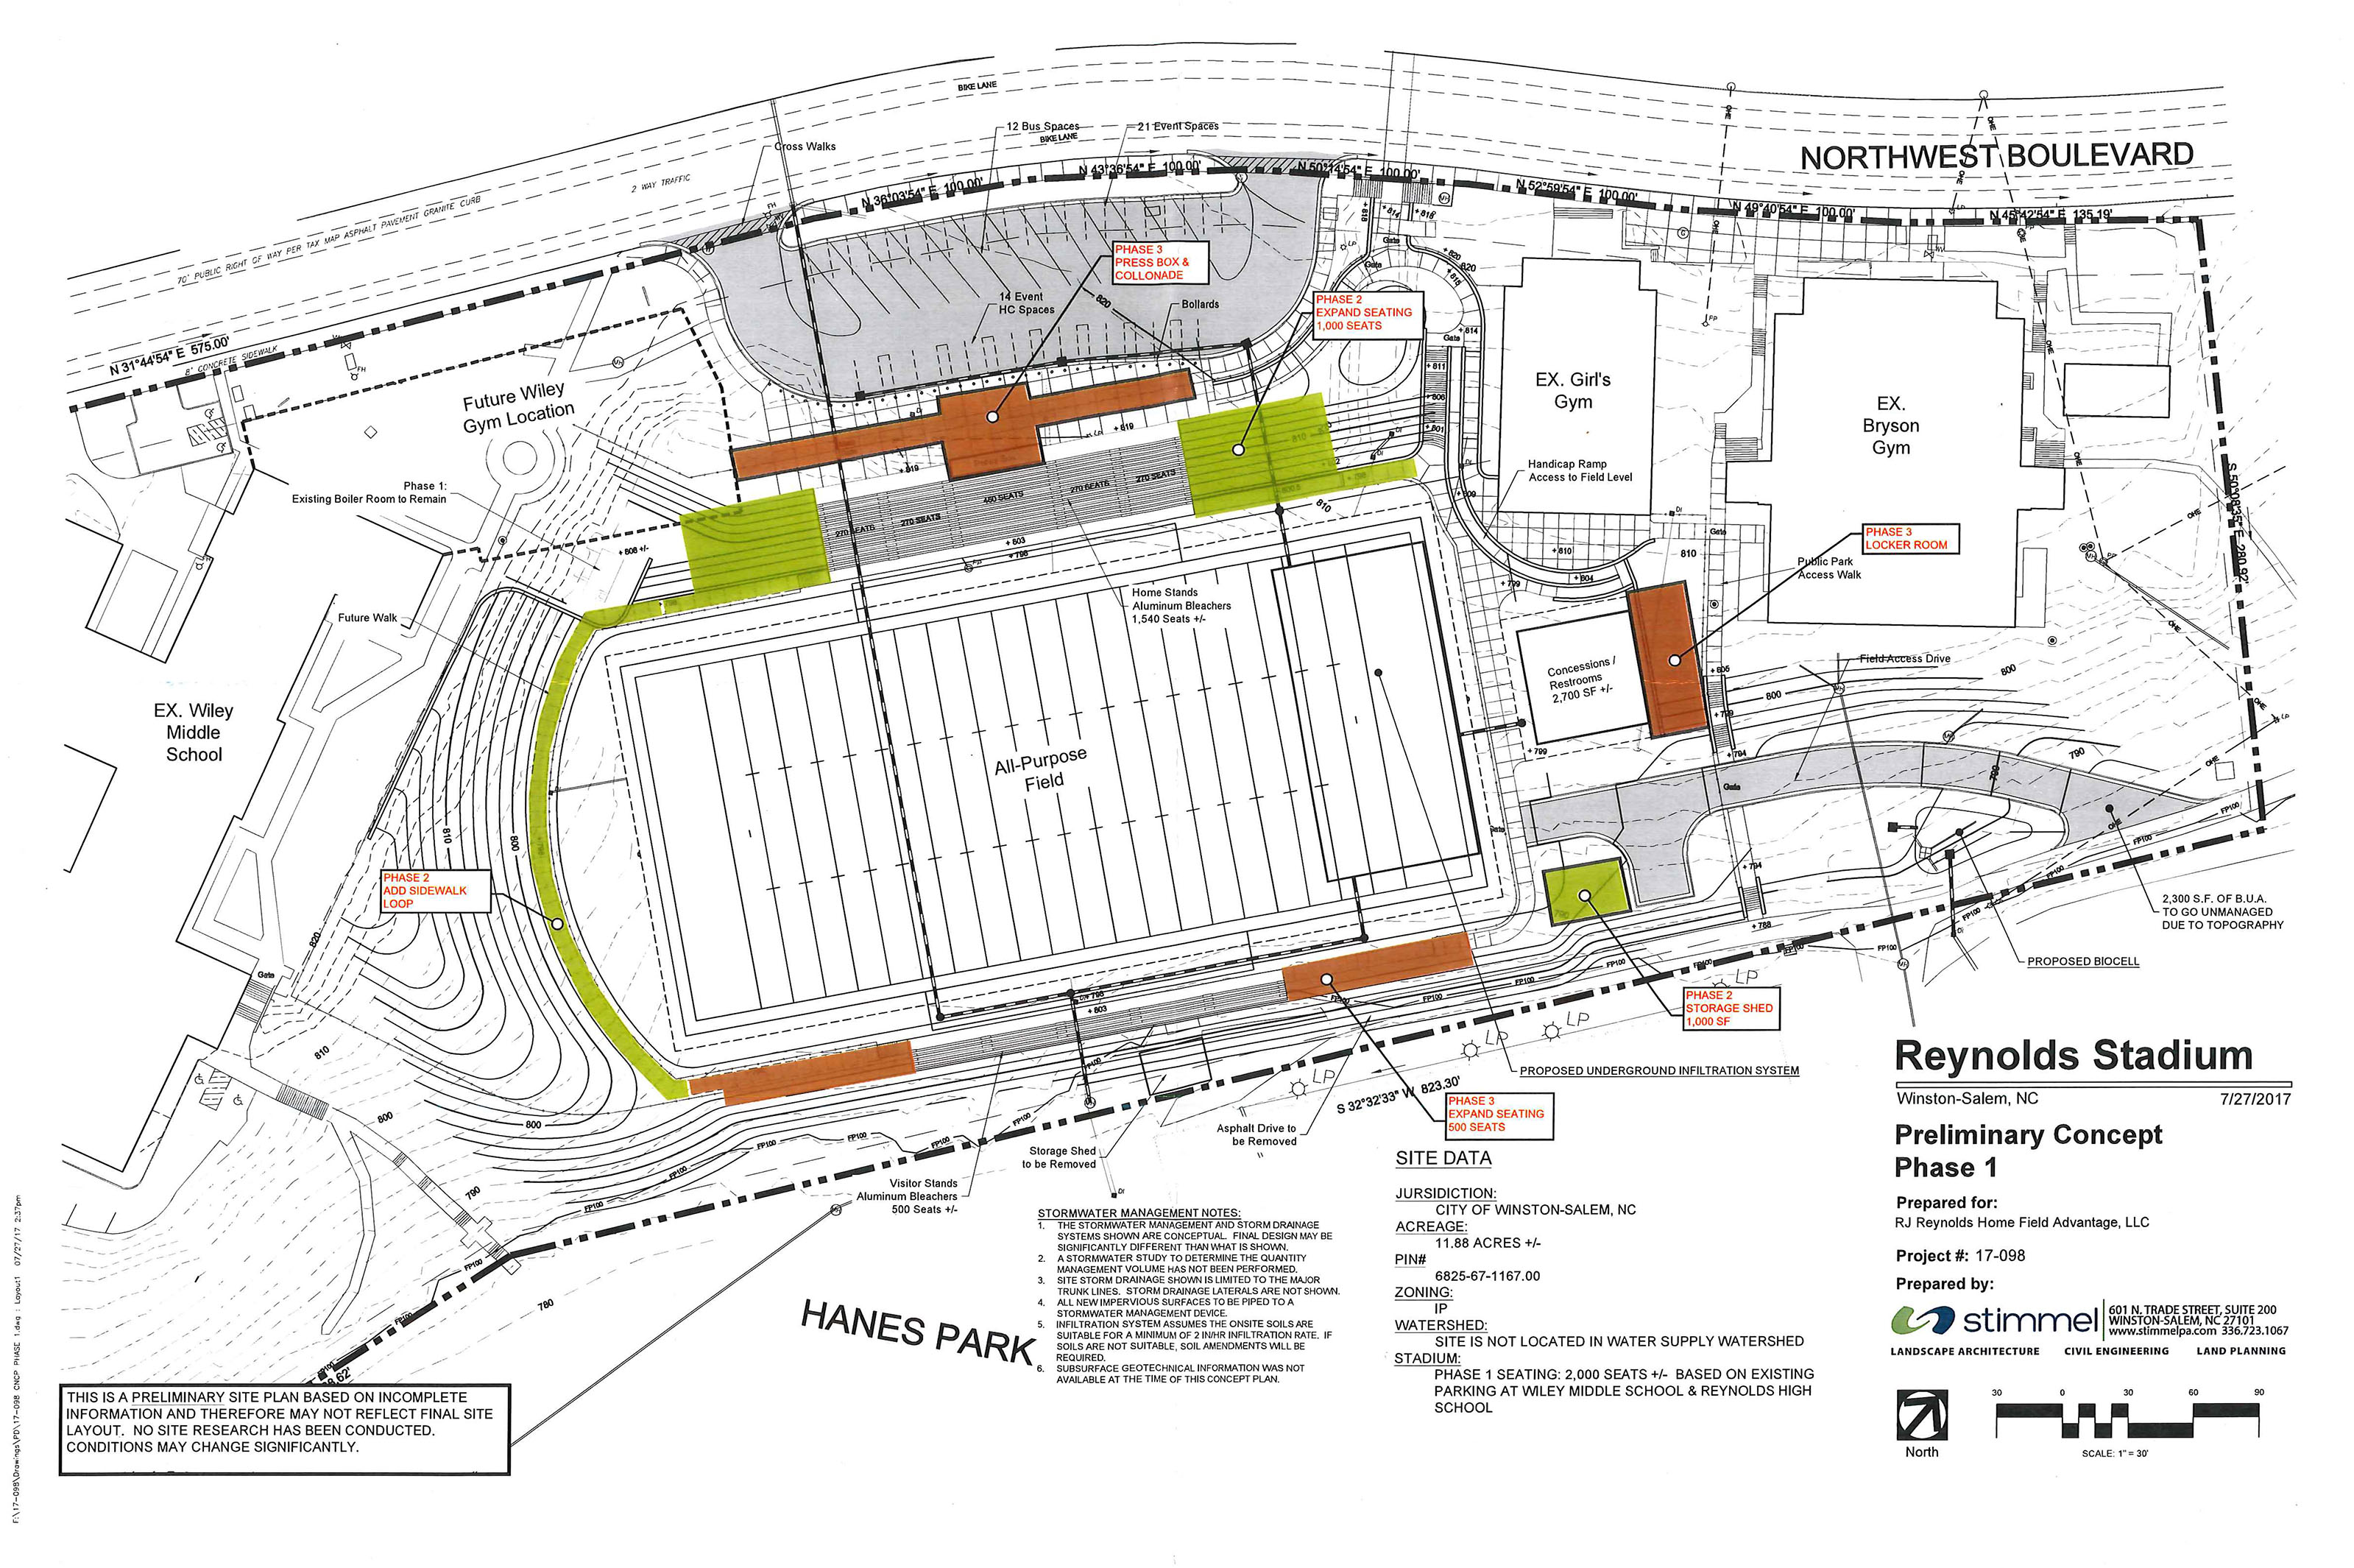 R.J. Reynolds stadium plan